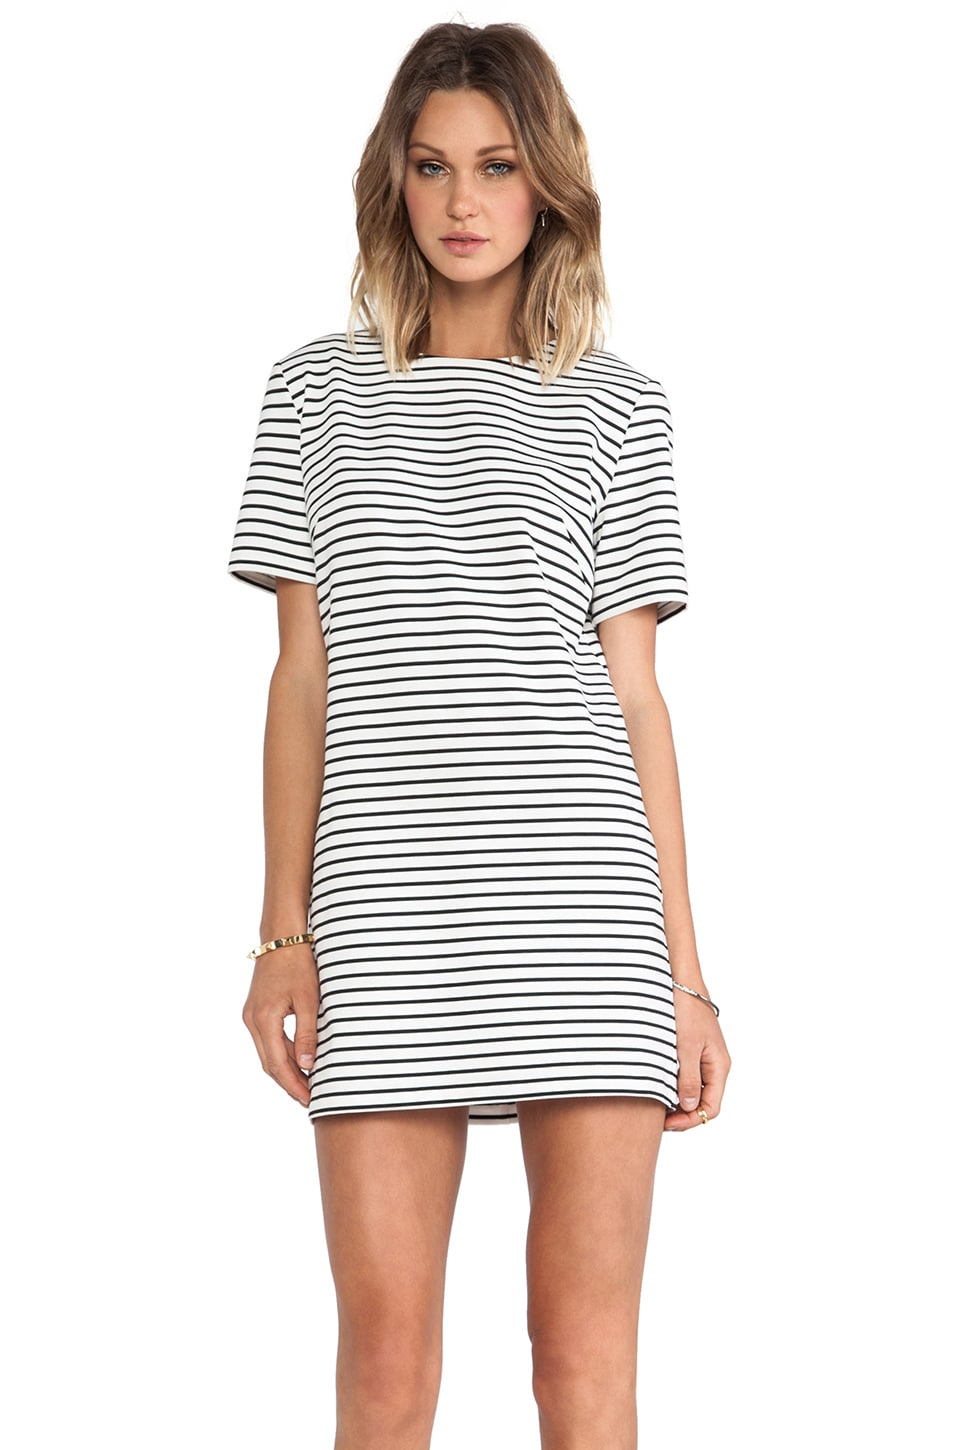 C/MEO The Motion Dress in Stripe